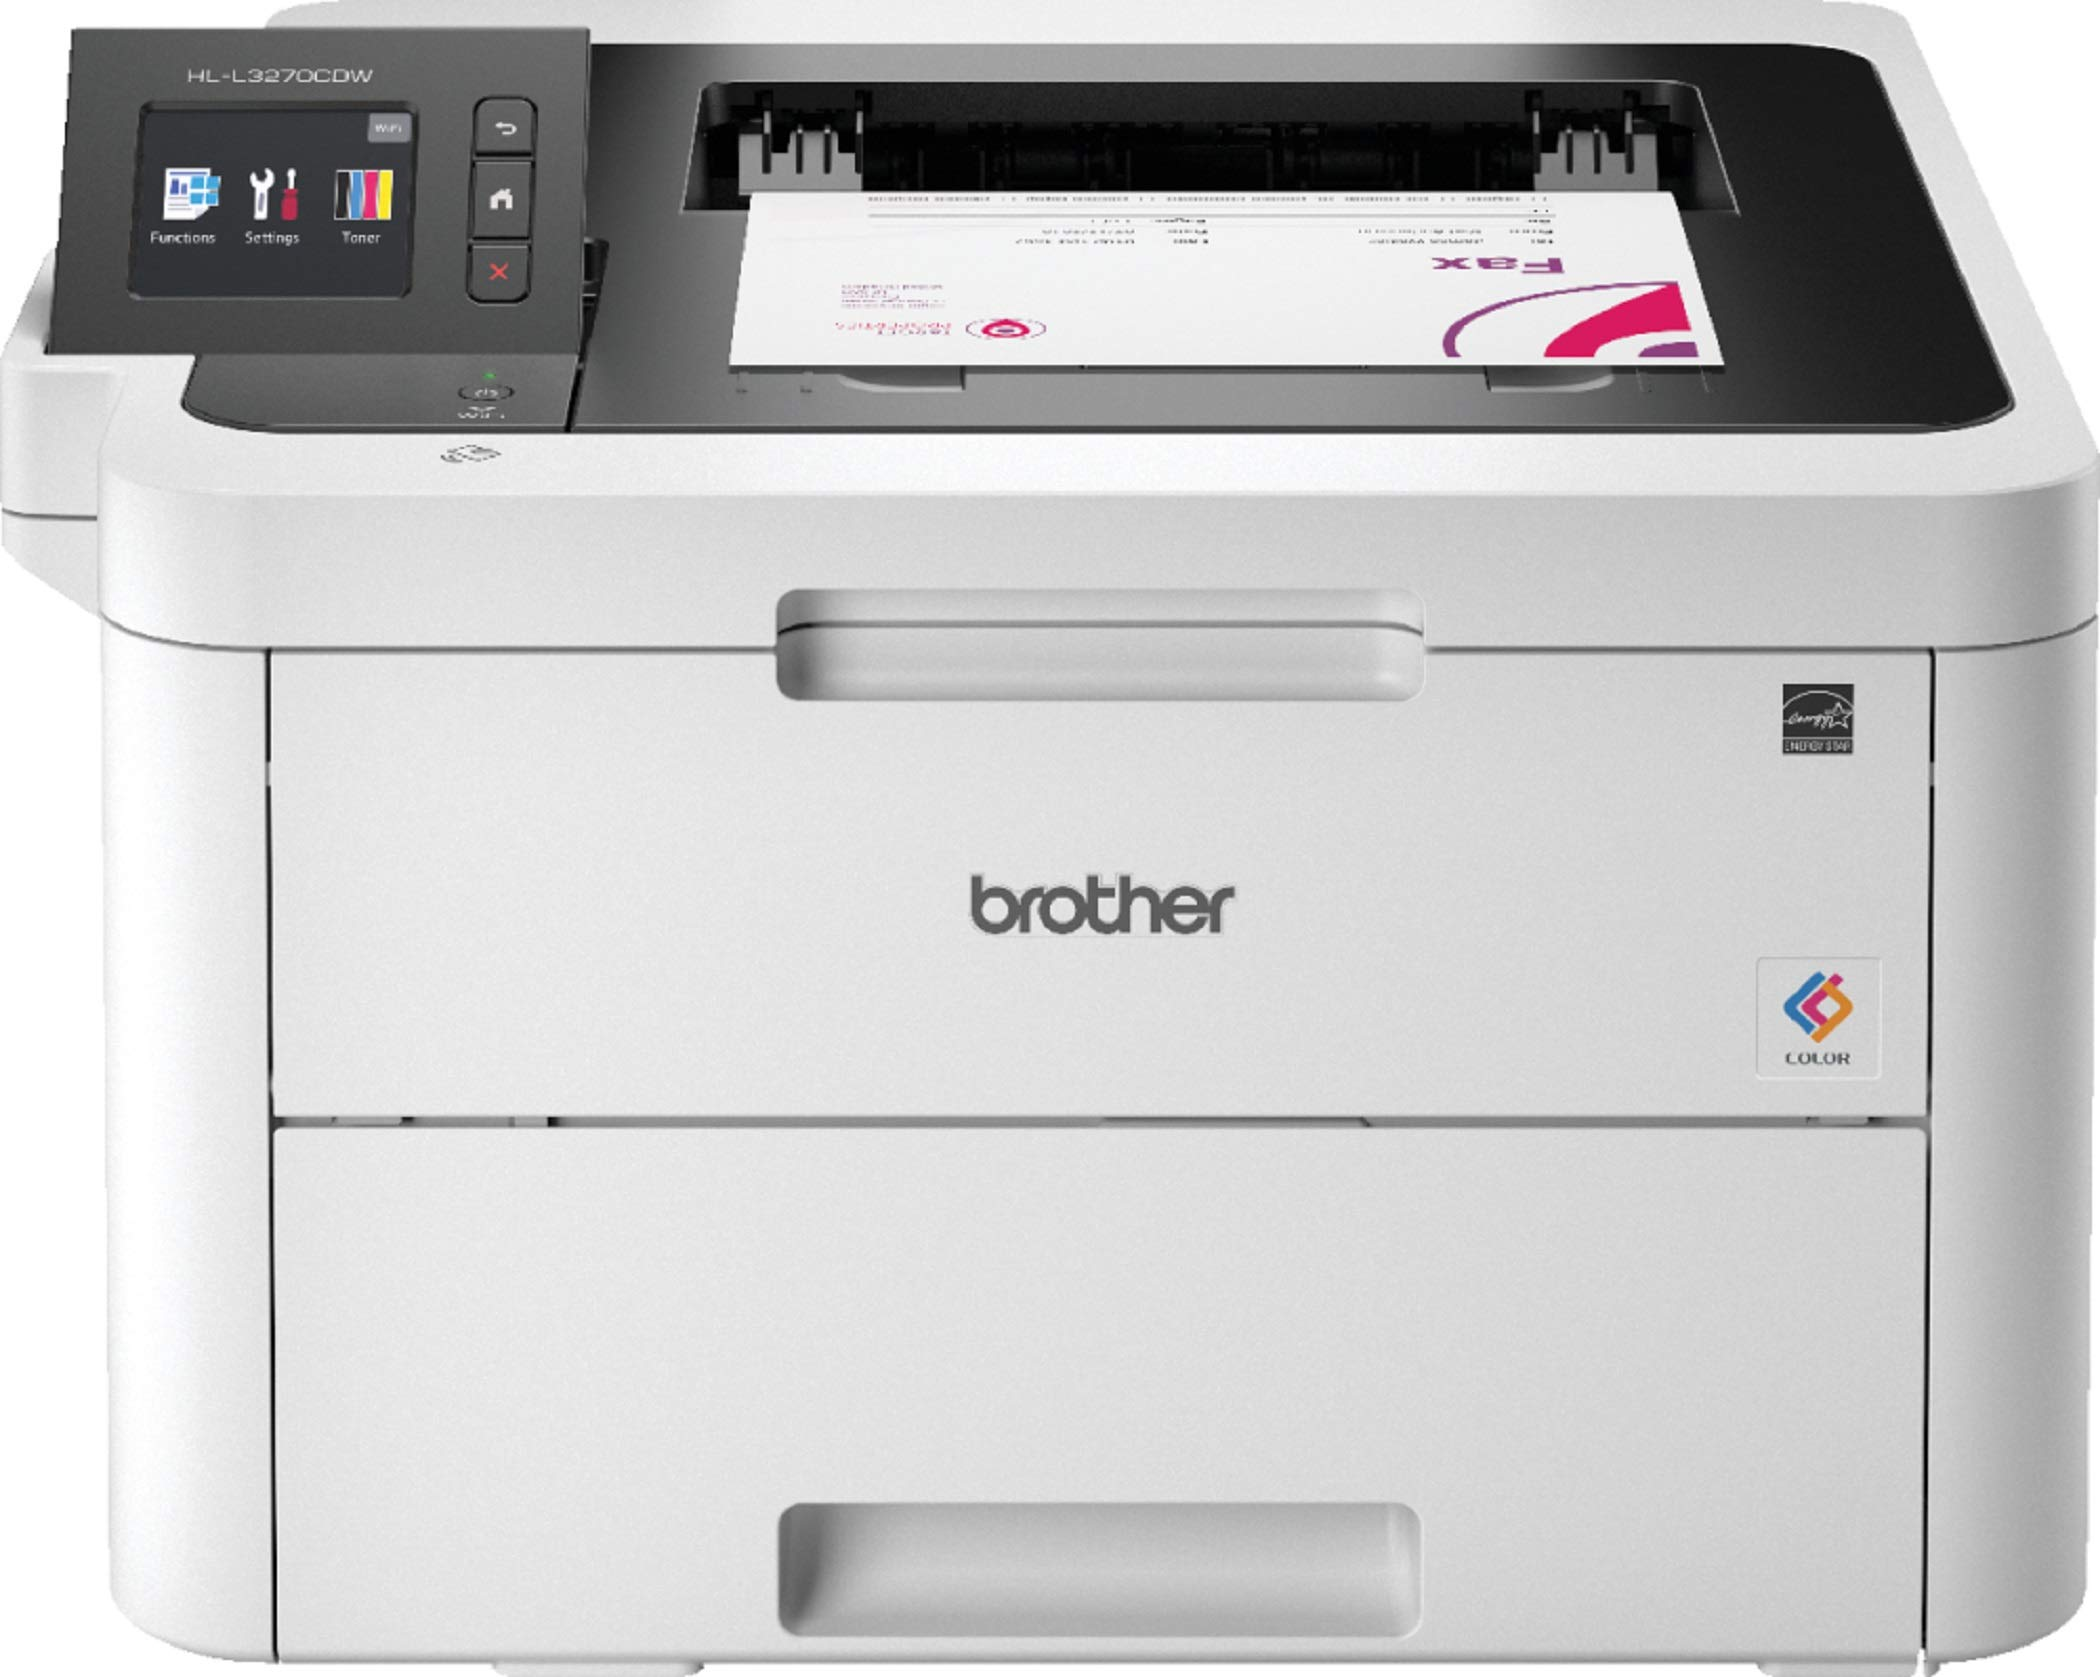 Brother HL-L3270CDW Colour Laser Printer - Single Function, Wireless/USB 2.0/NFC, 2 Sided Printing, 24PPM, A4 Printer, Small Office/Home Office Printer